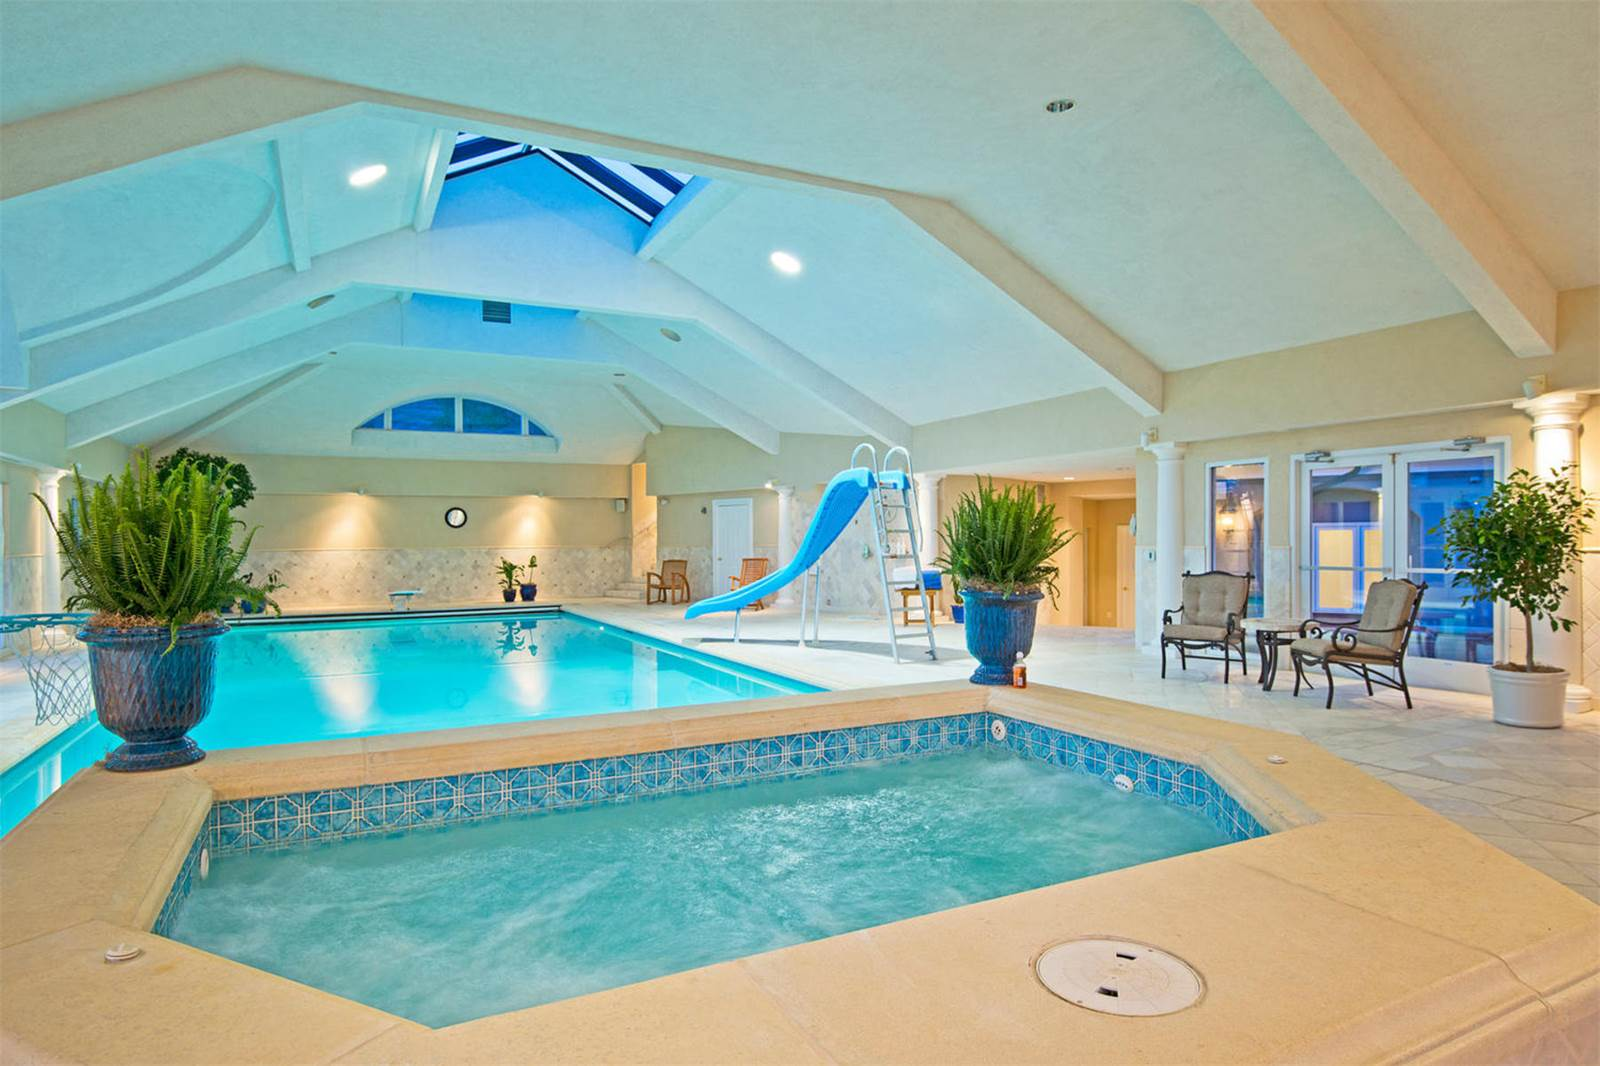 good homes for sale in utah with swimming pools #4: Emigration Canyon, Utah u2013 As you turn down into the driveway of this  magnificent estate, you are transported from Salt Lake City to the pastoral  Italian ...